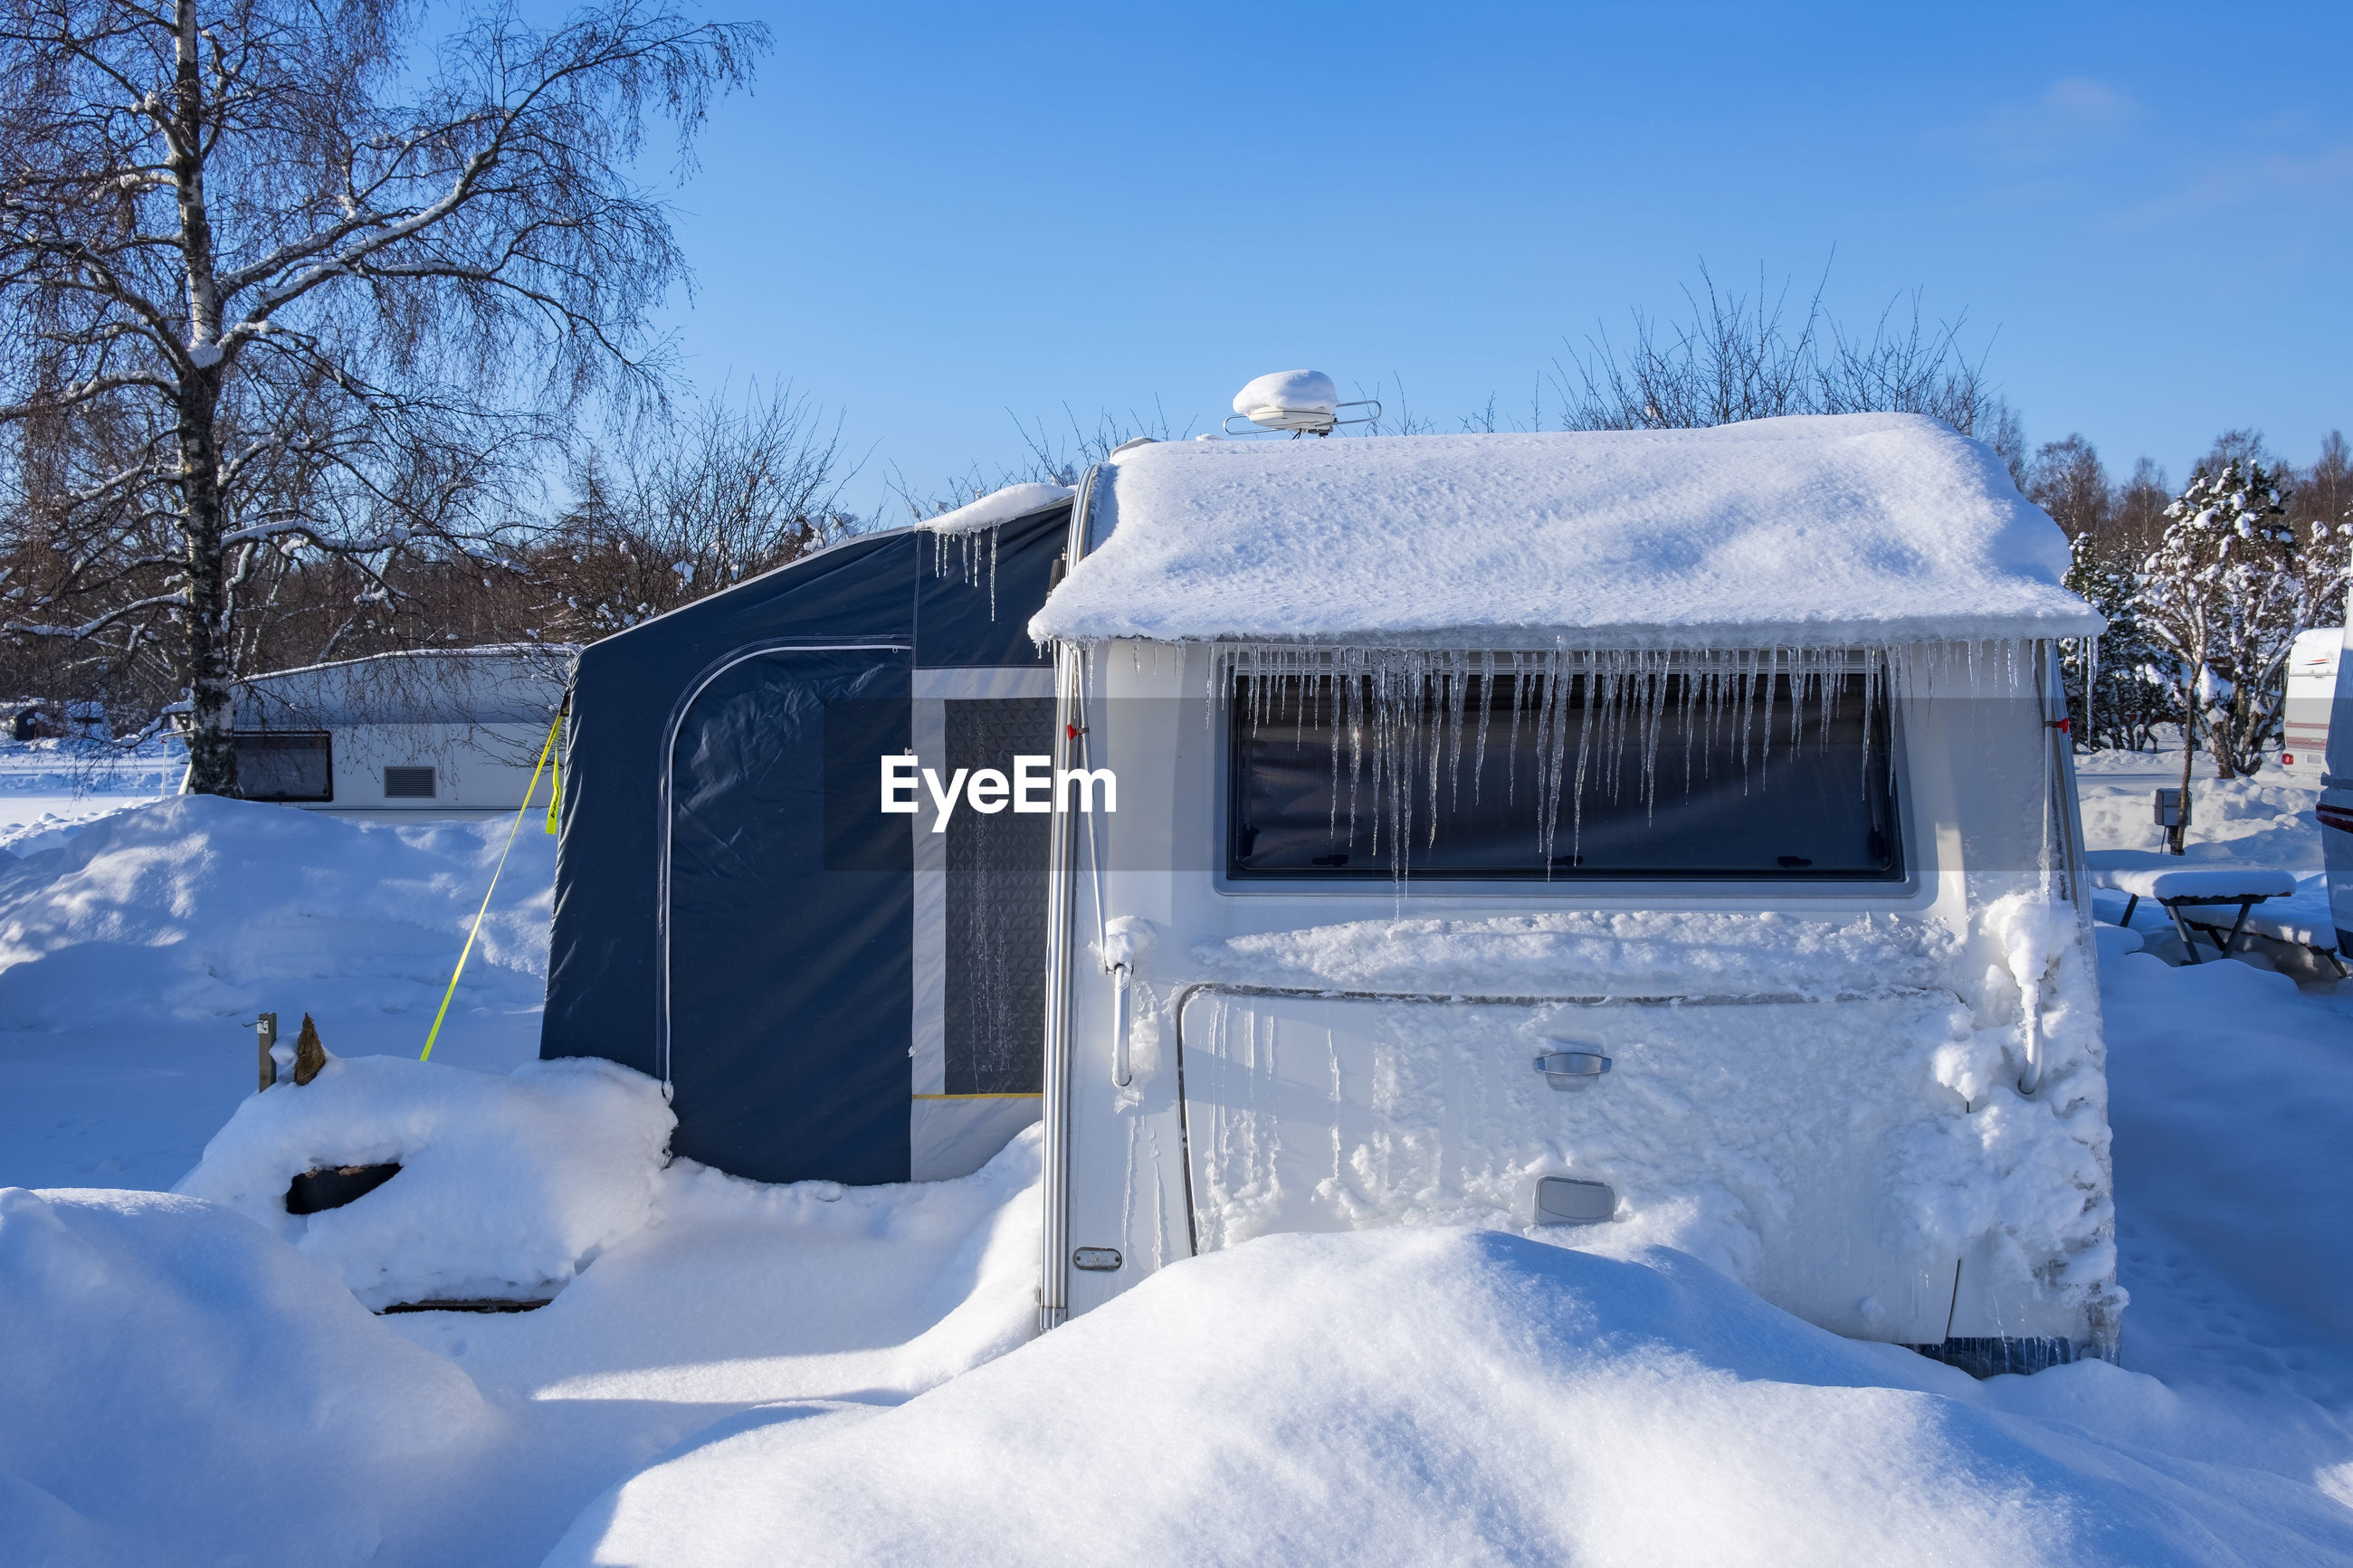 SNOW COVERED HOUSE AGAINST BUILDING